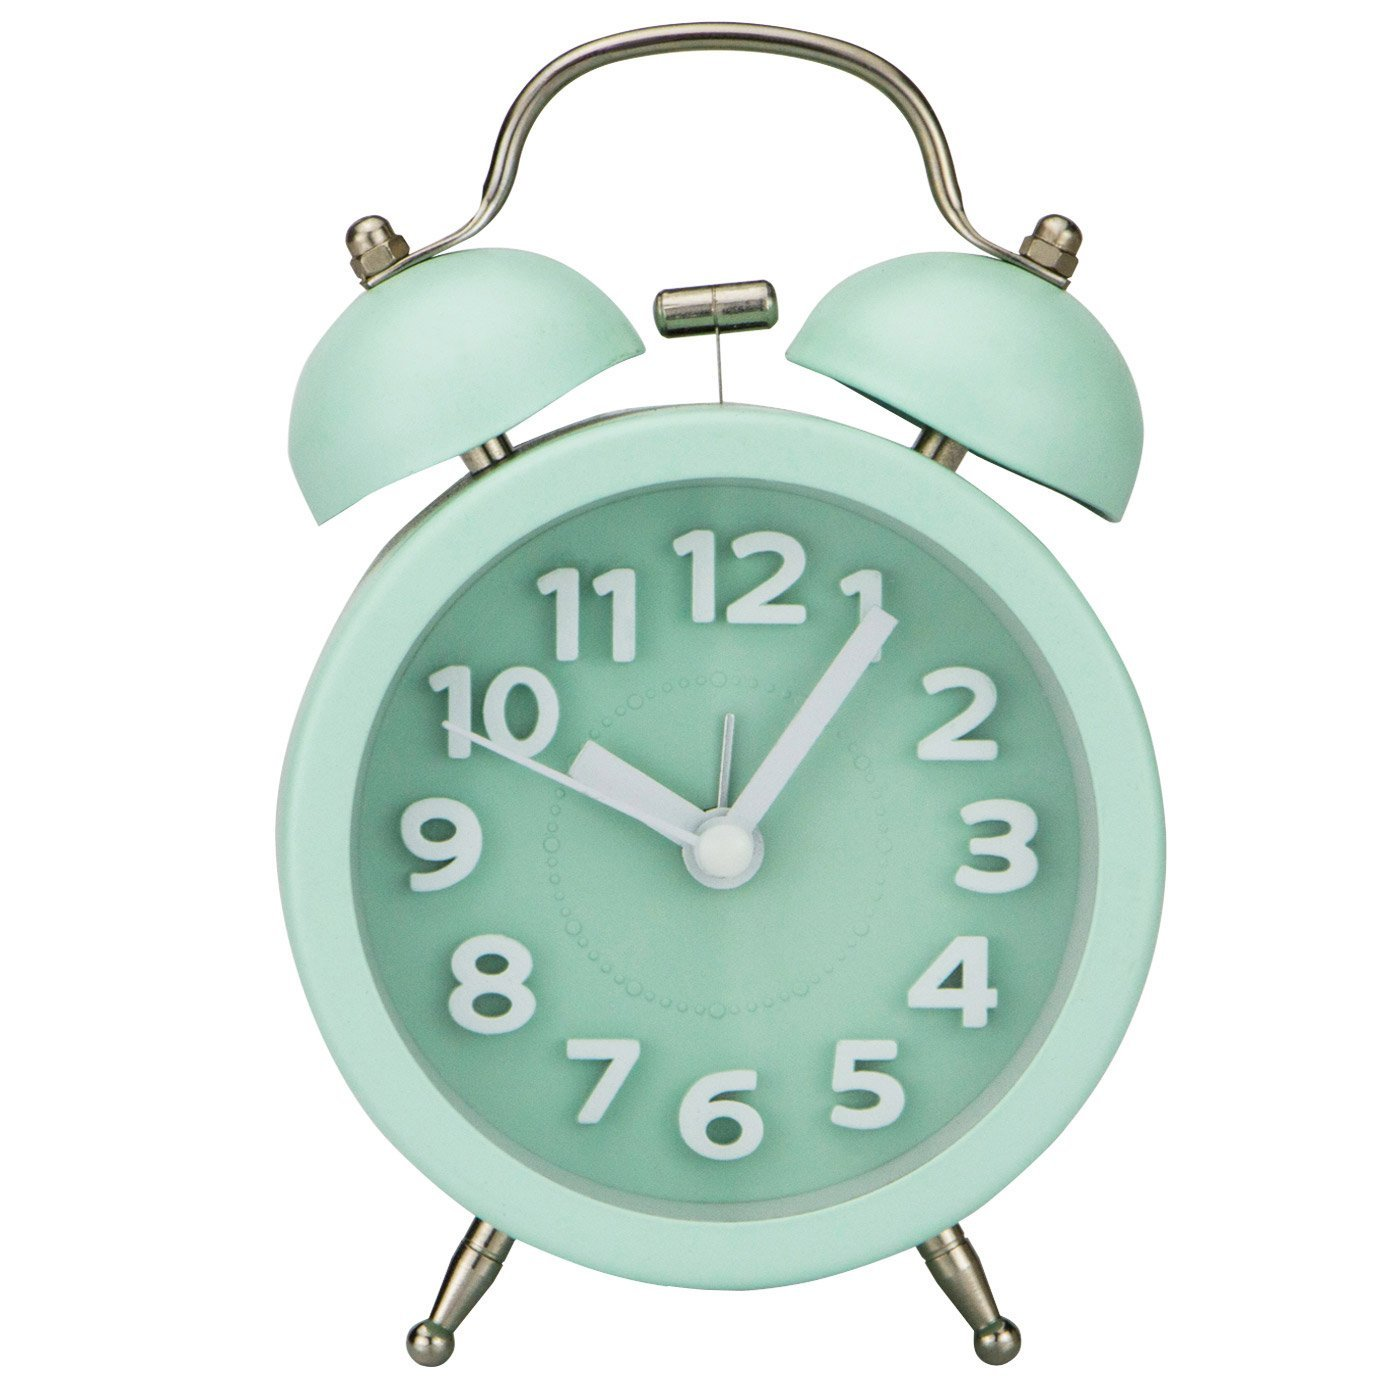 """[Upgrade Version] PiLife 3"""" Mini Non-ticking Vintage Classic Bedside /Table Alarm Clock with Backlight, Battery Operated Travel Clock, Round Twin Bell Loud Alarm Clock( 3D Mint Green)"""